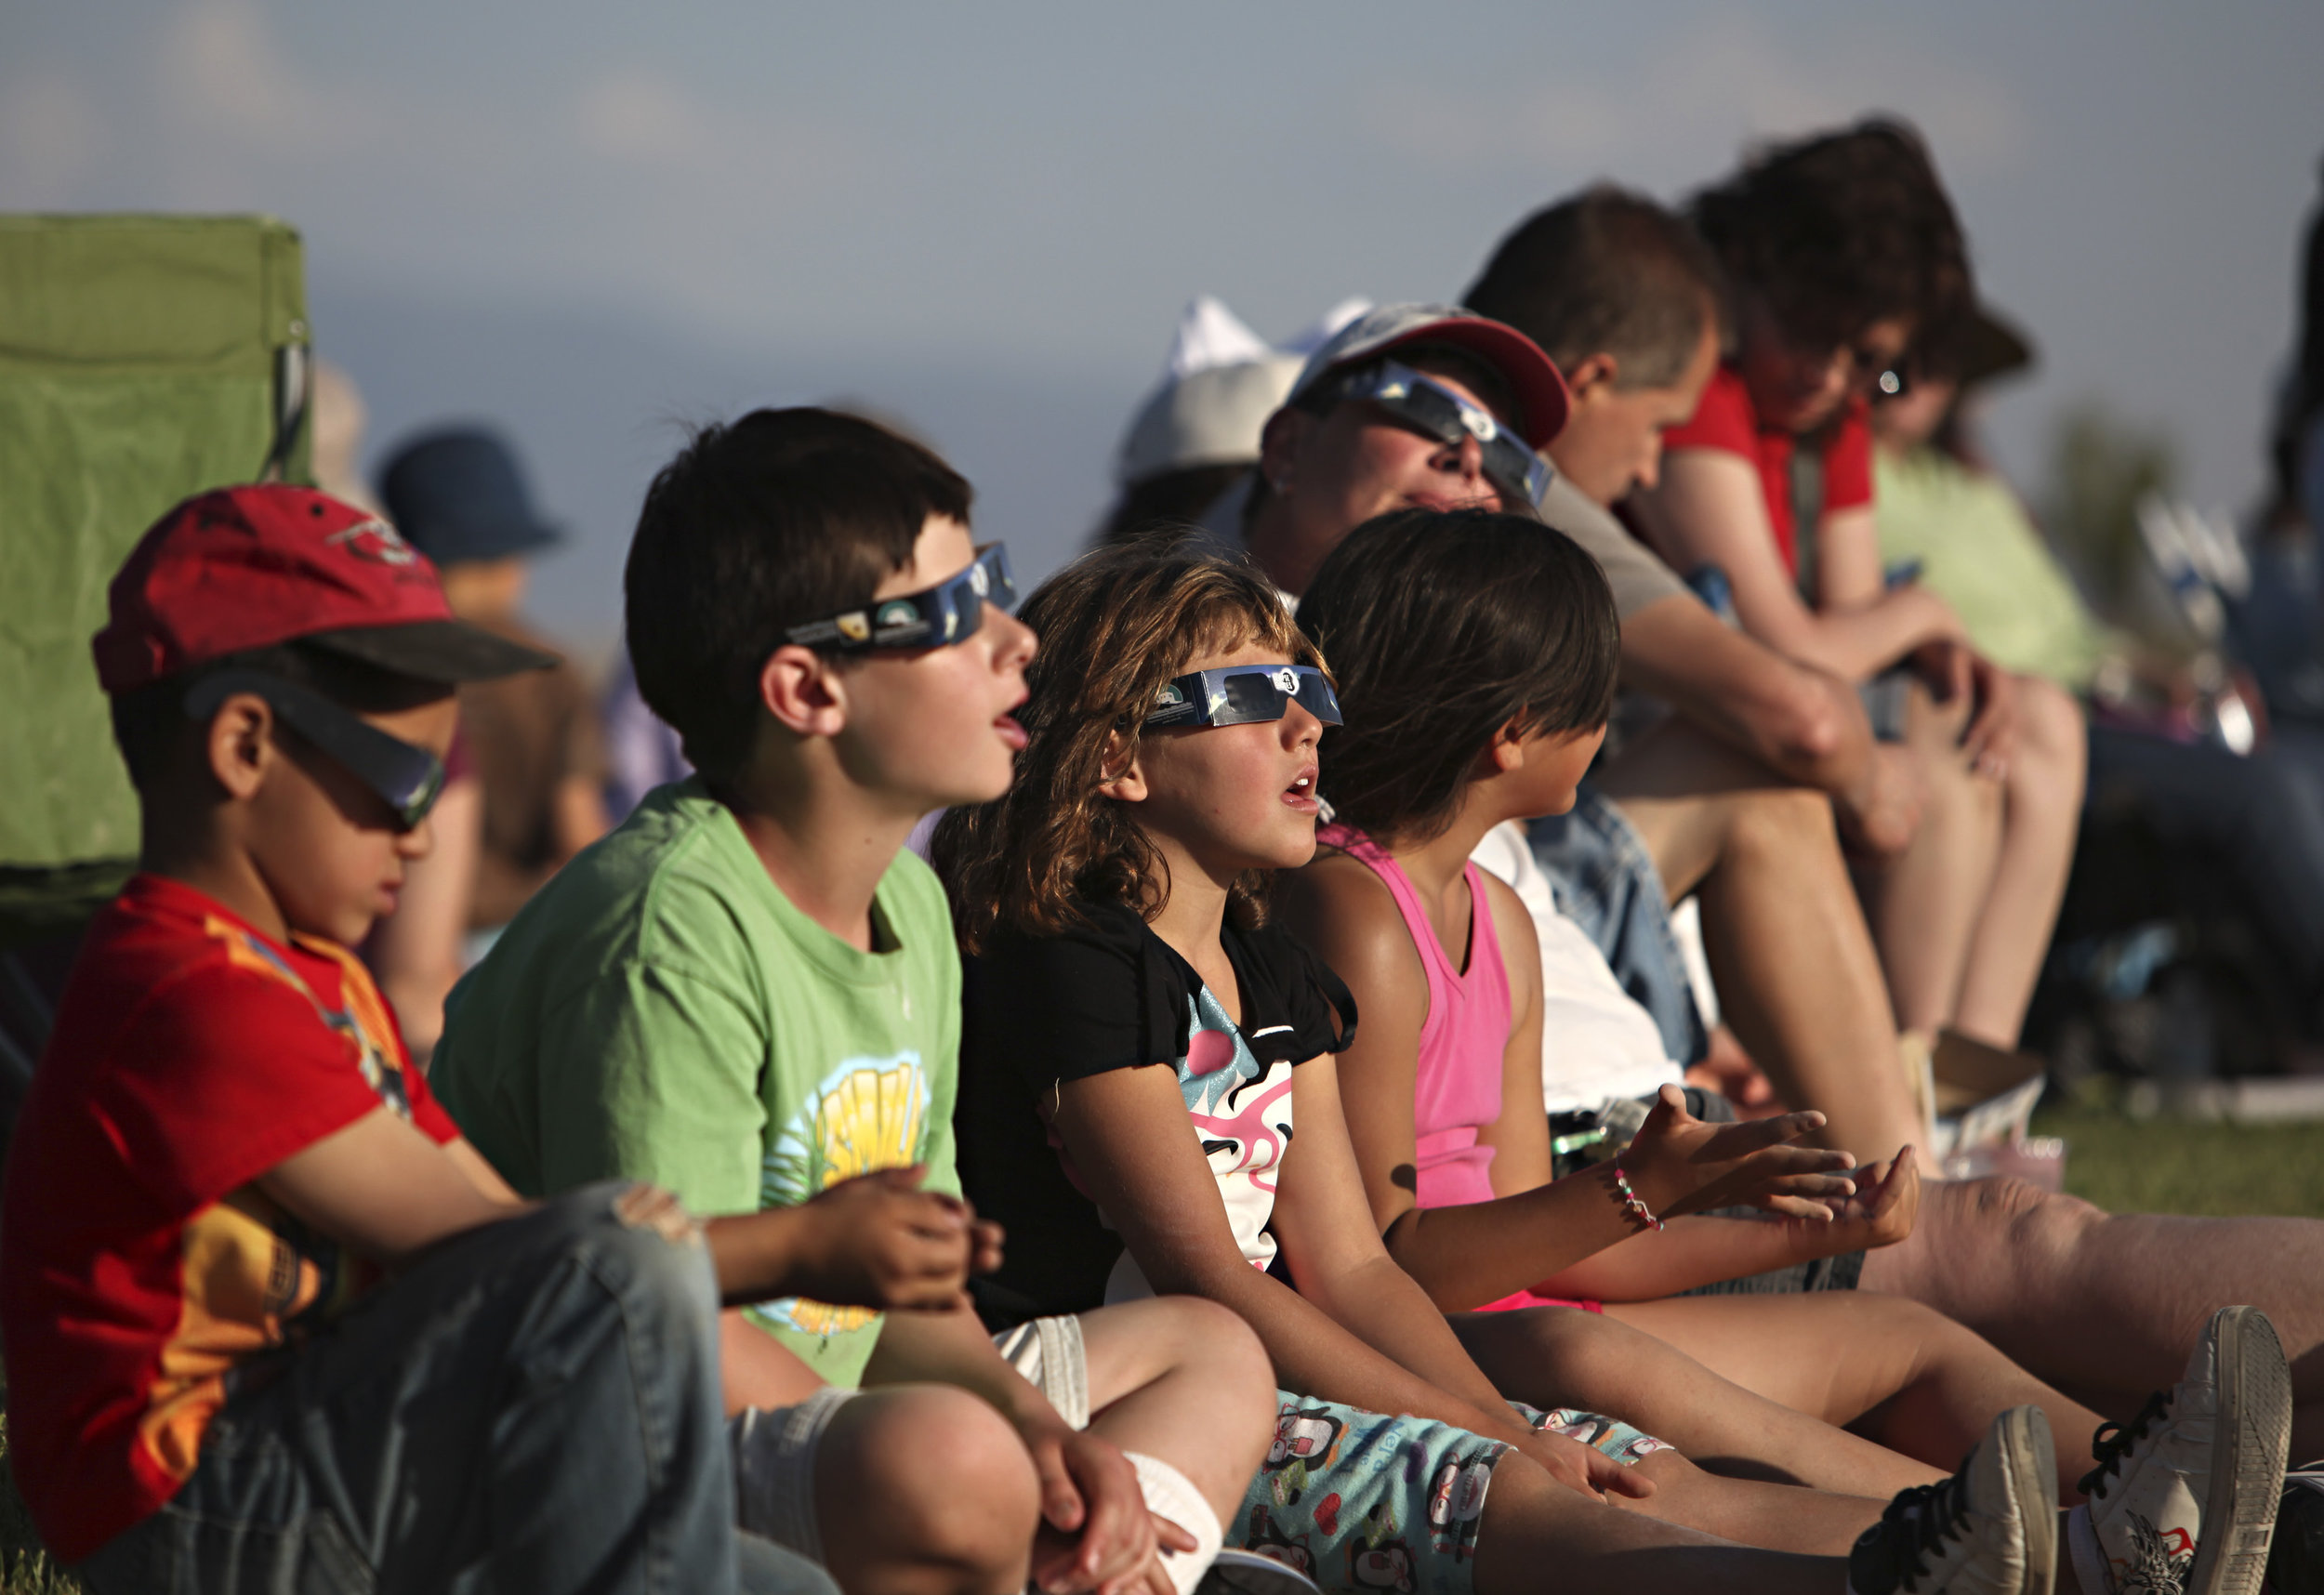 Children watch the annular solar eclipse during a viewing party near the Hard Rock Casino Presents the Pavilion, Sunday, May 20, 2012, in Albuquerque, NM. (Morgan Petroski/Albuquerque Journal)